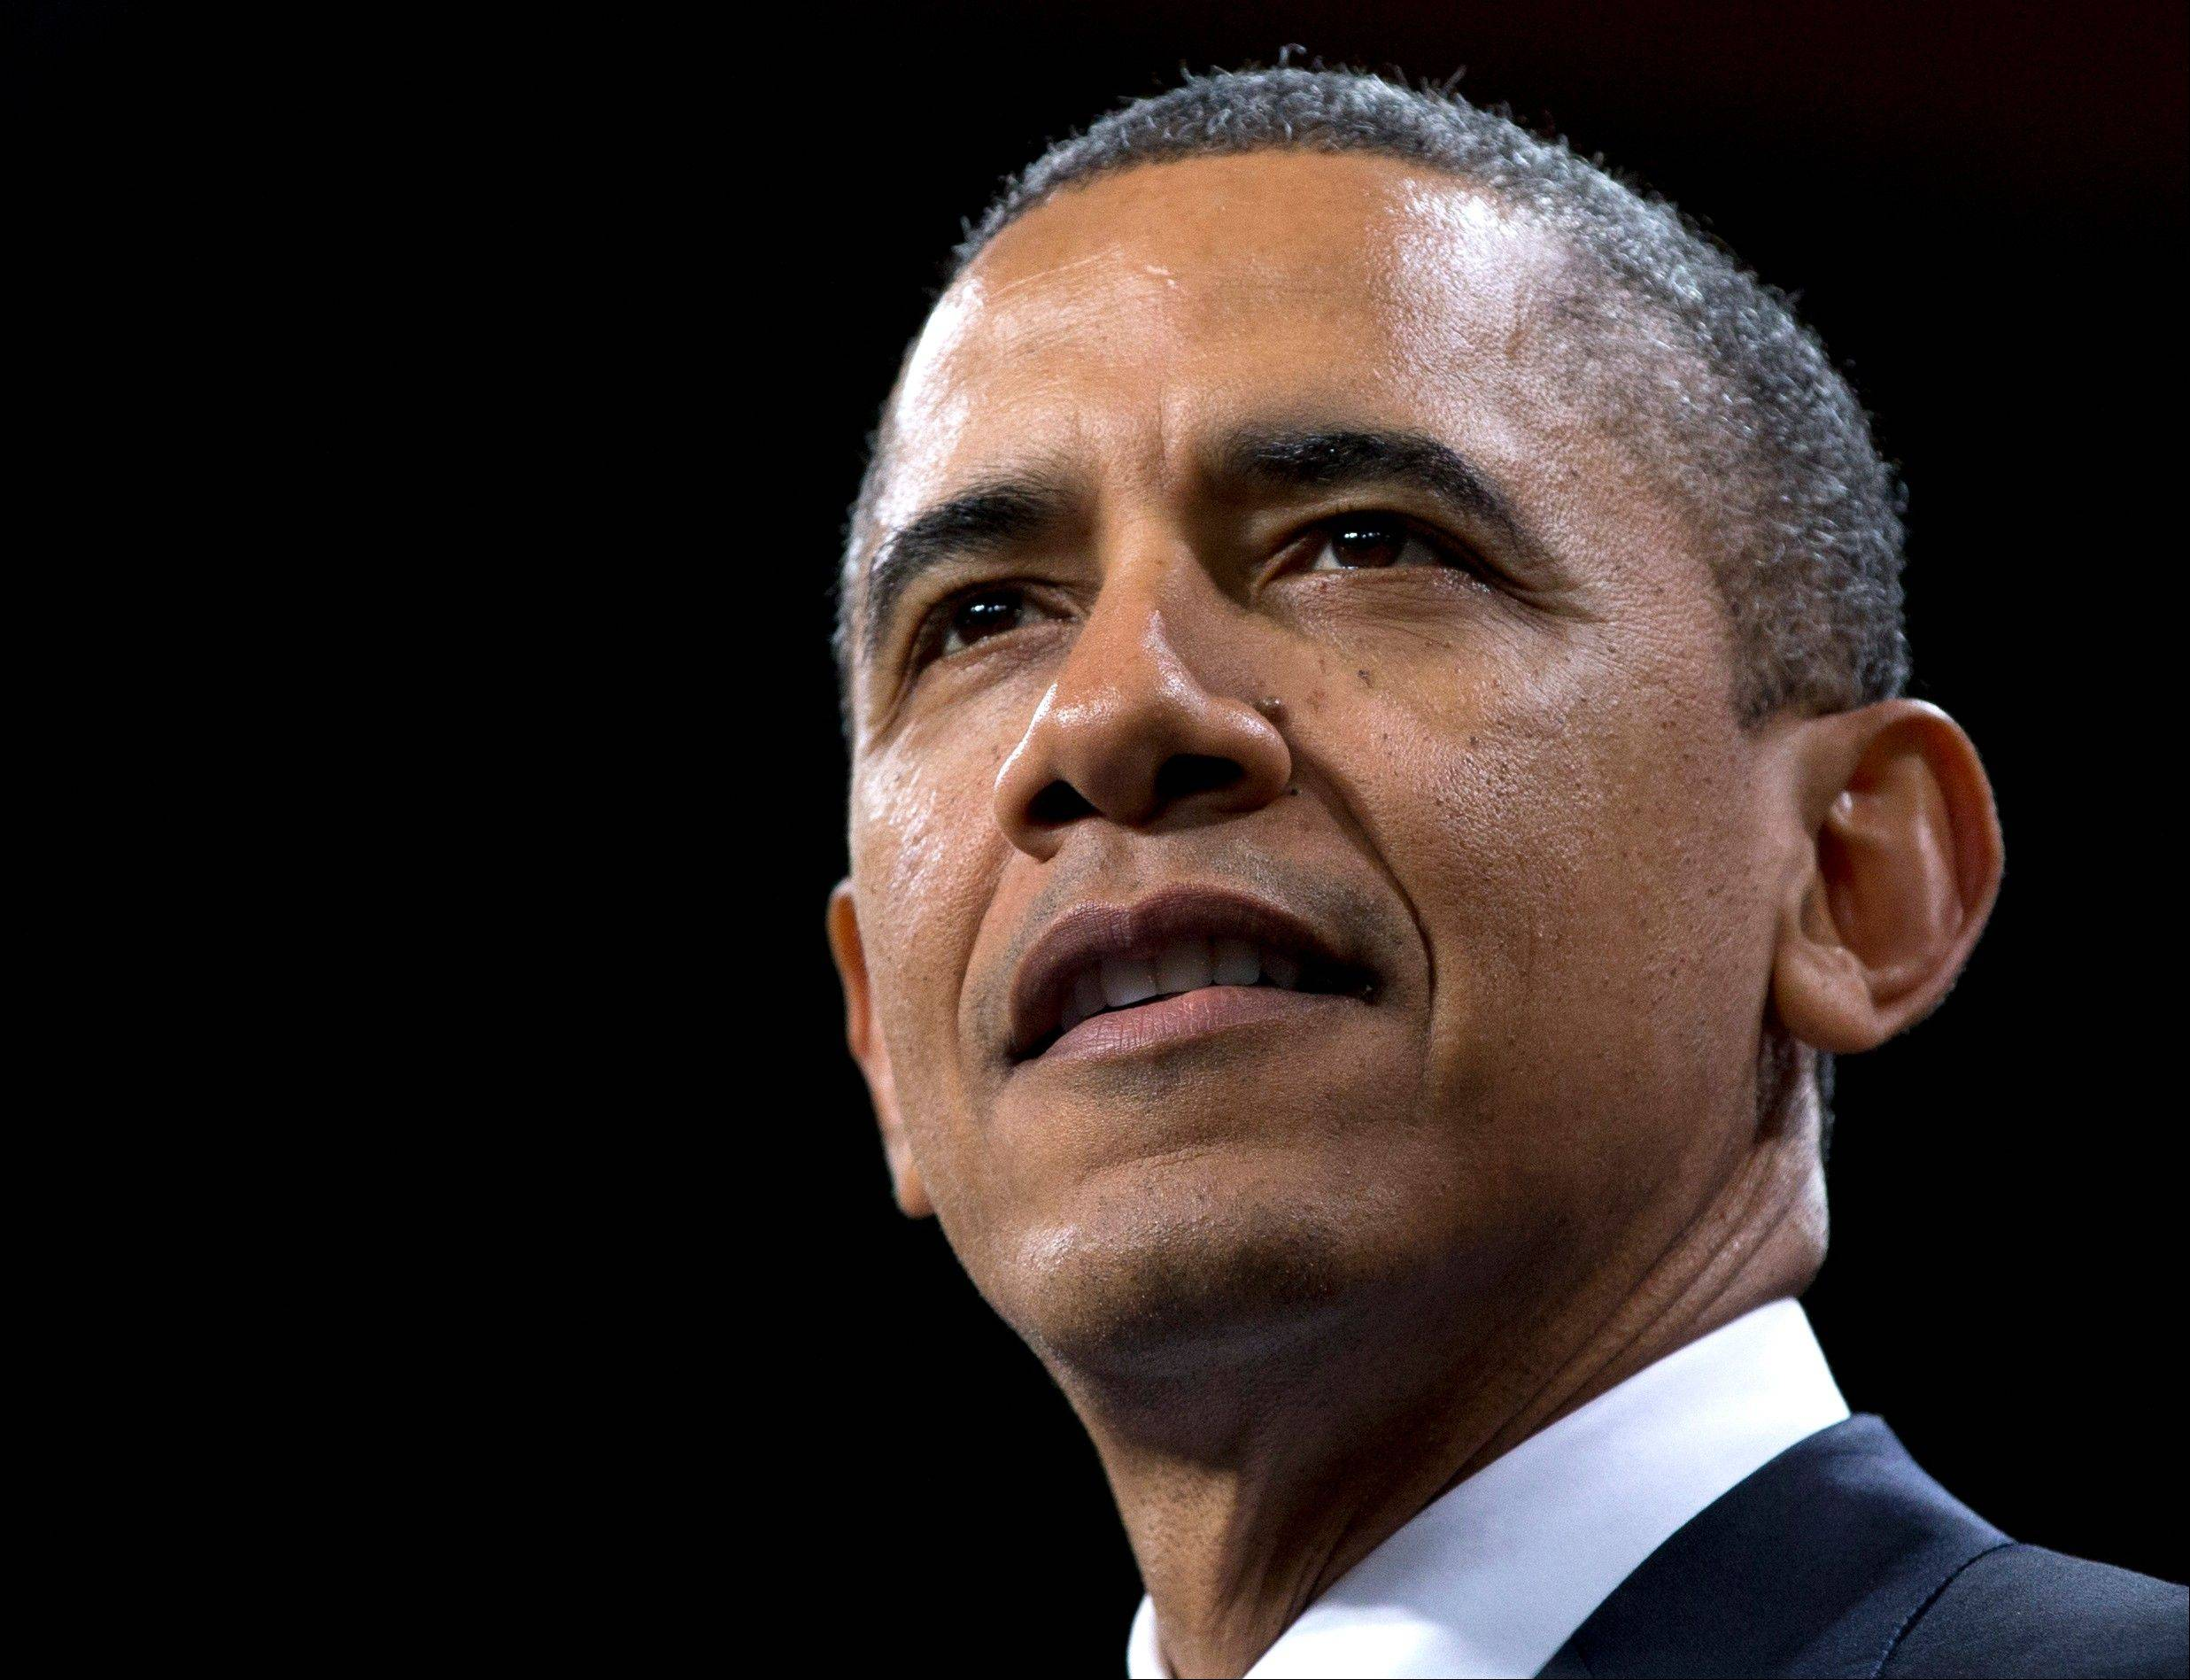 President Barack Obama speaks about immigration in Las Vegas on Jan. 29. The White House is circulating a draft immigration bill that would create a new visa for illegal immigrants living in the United States and allow them to become legal permanent residents within eight years, according to a report published online Saturday by USA Today.